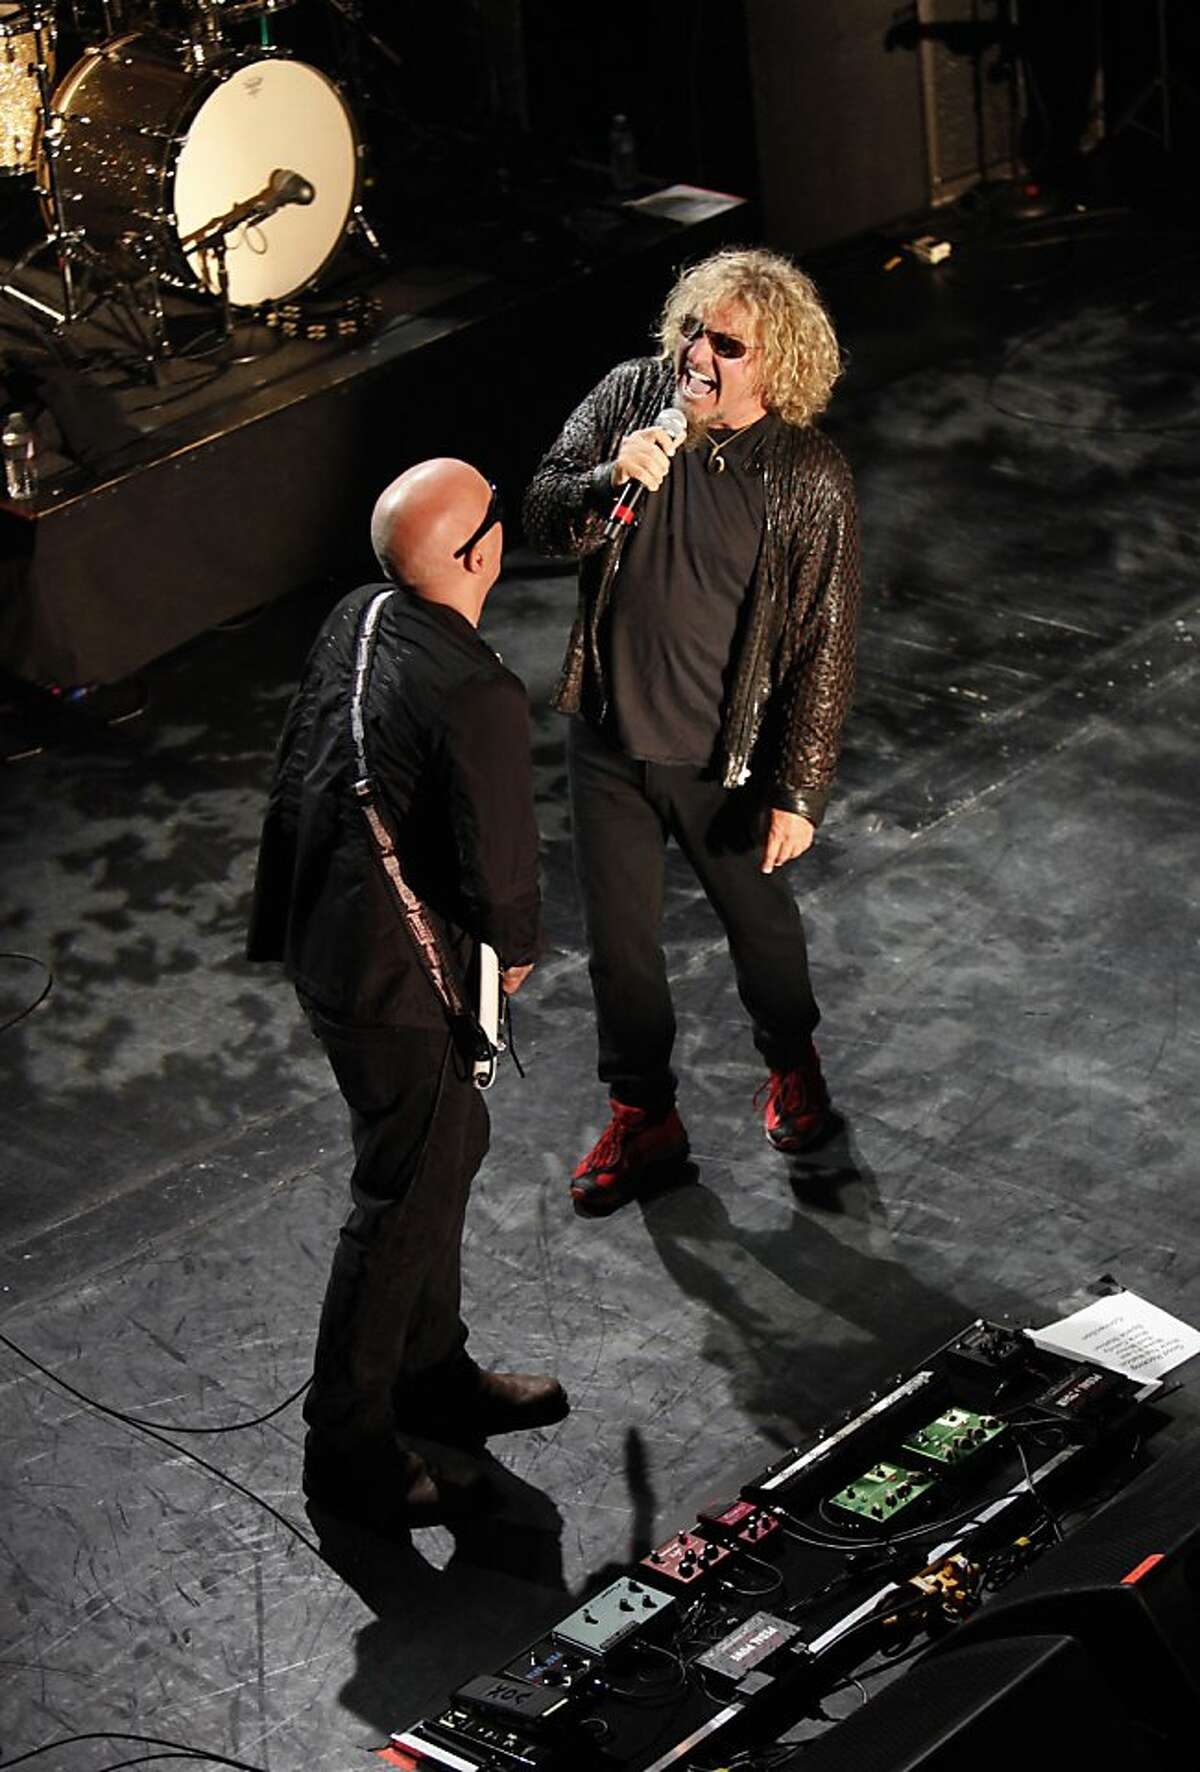 Joe Satriani, left, and Sammy Hagar perform at the Ronnie Montrose Tribute Concert in San Francisco, Calif., on Friday, April 27th, 2012.